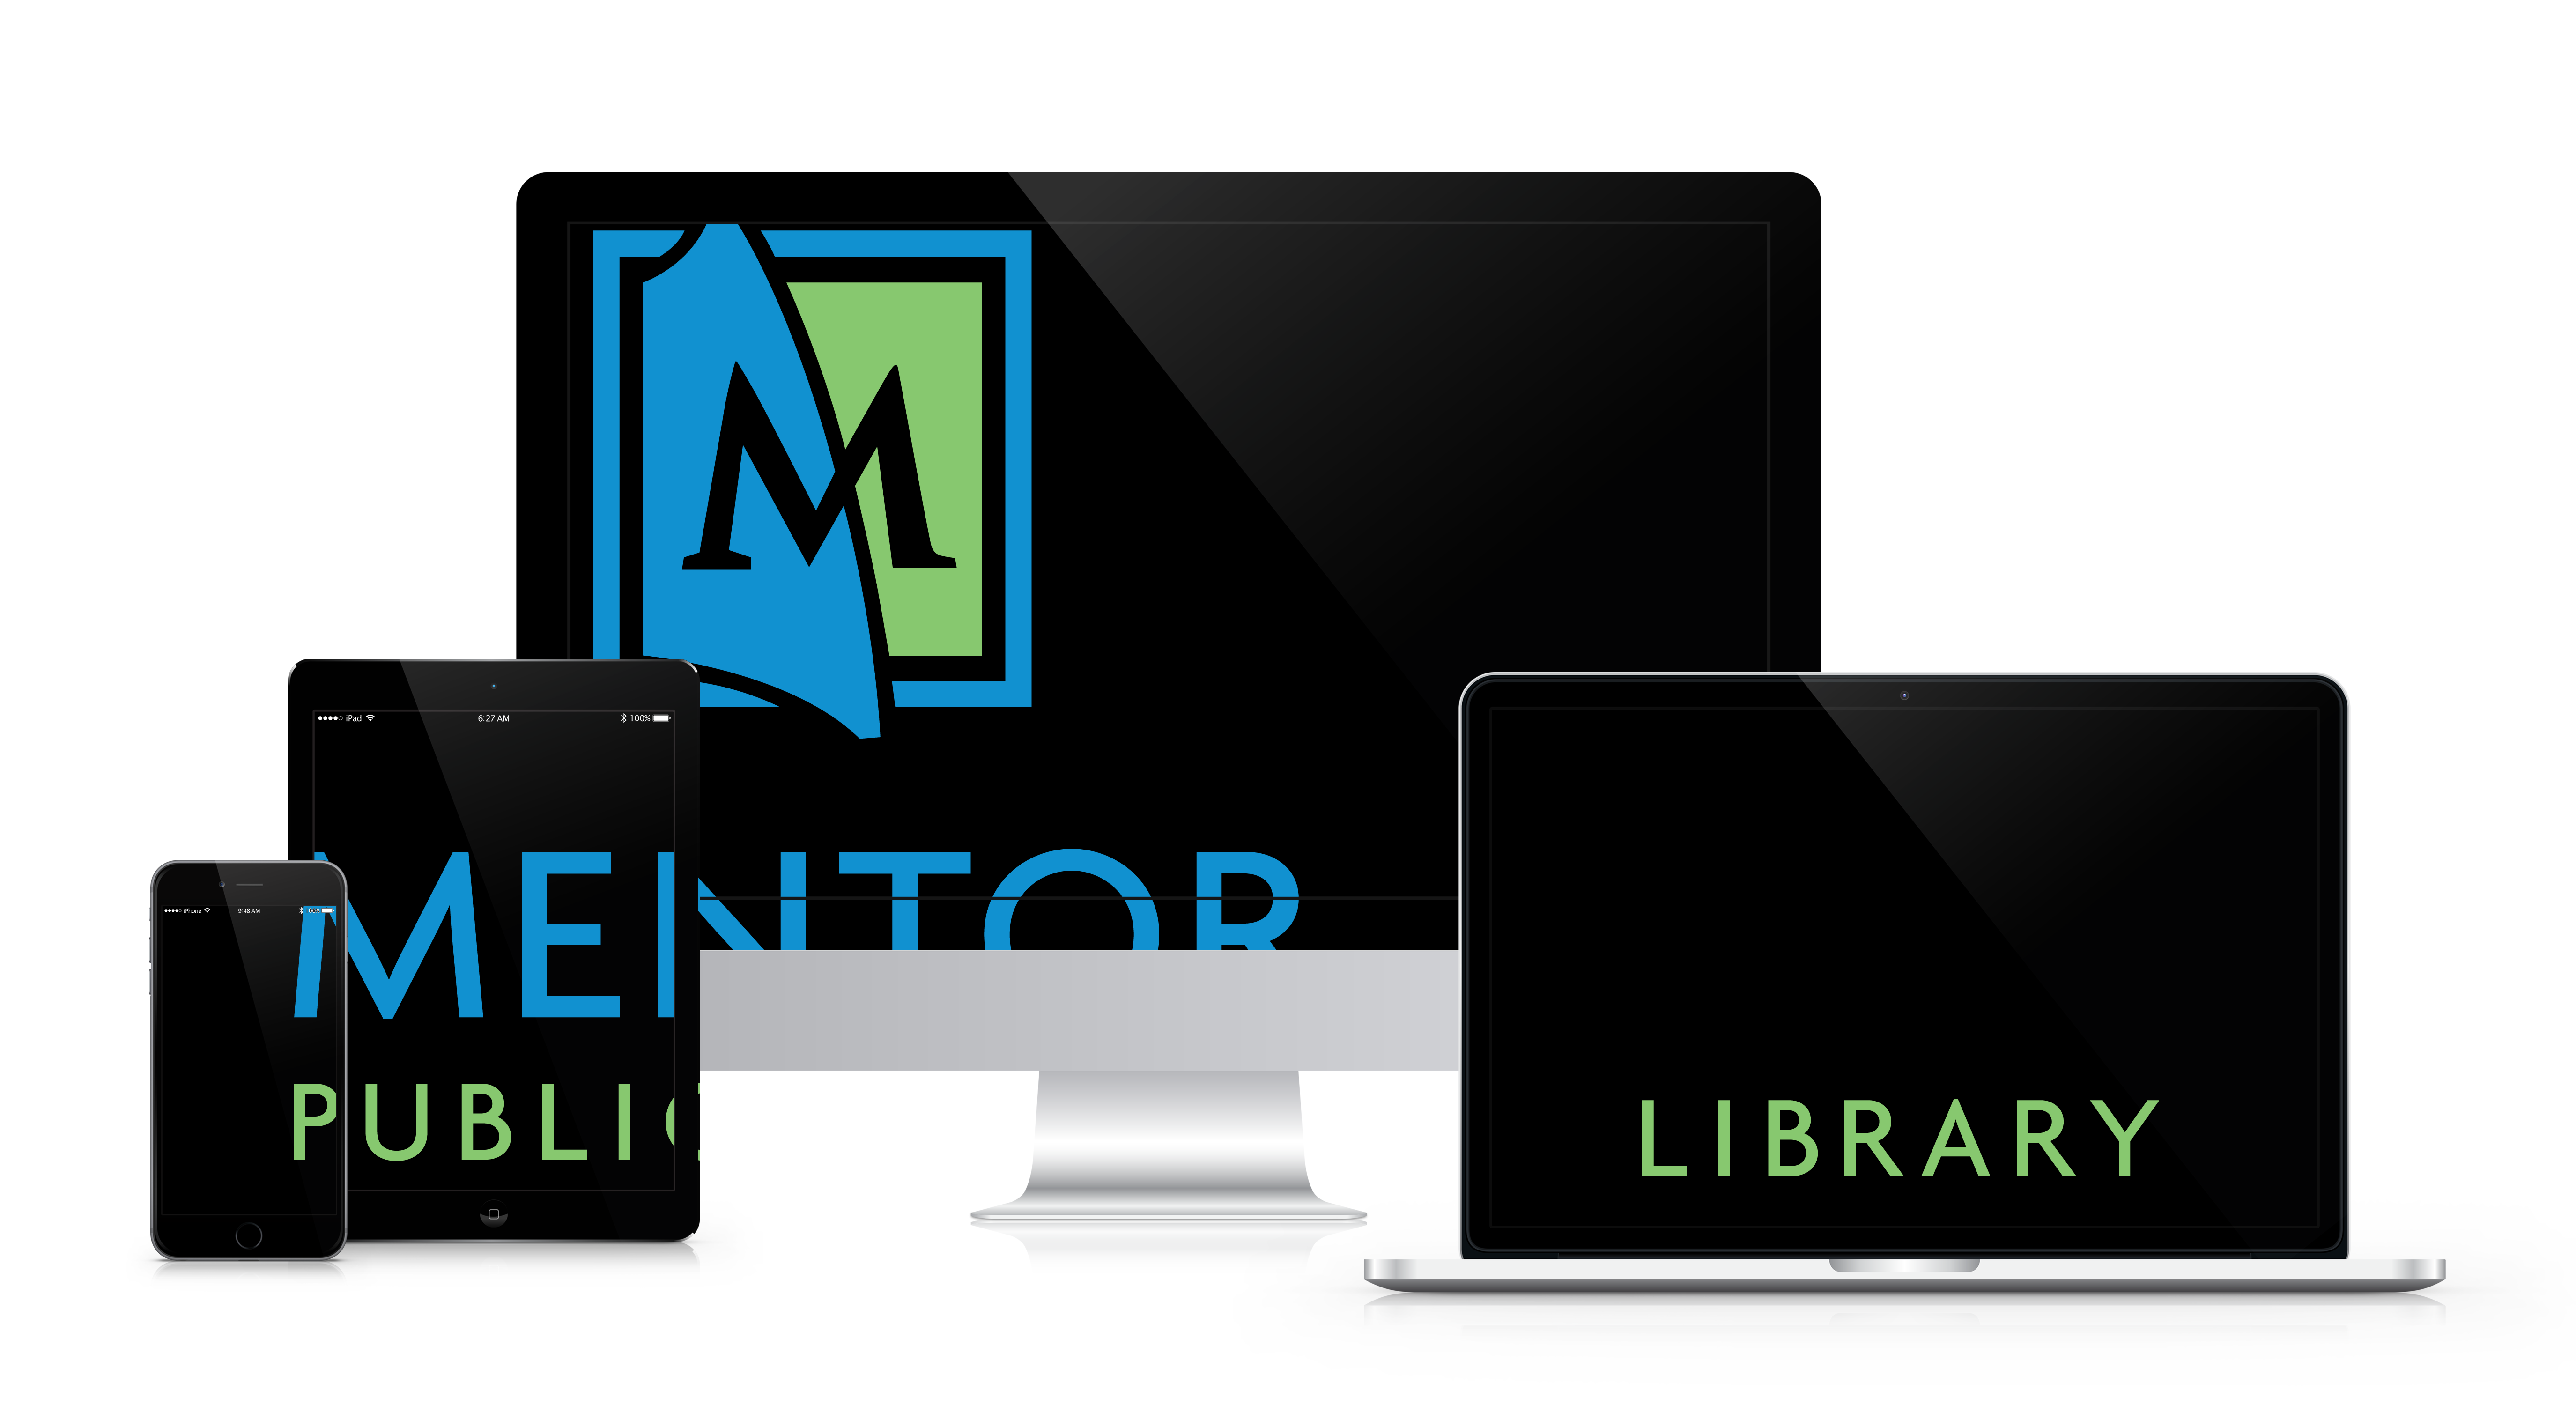 Discover the online resources from your library | Mentor Public Library